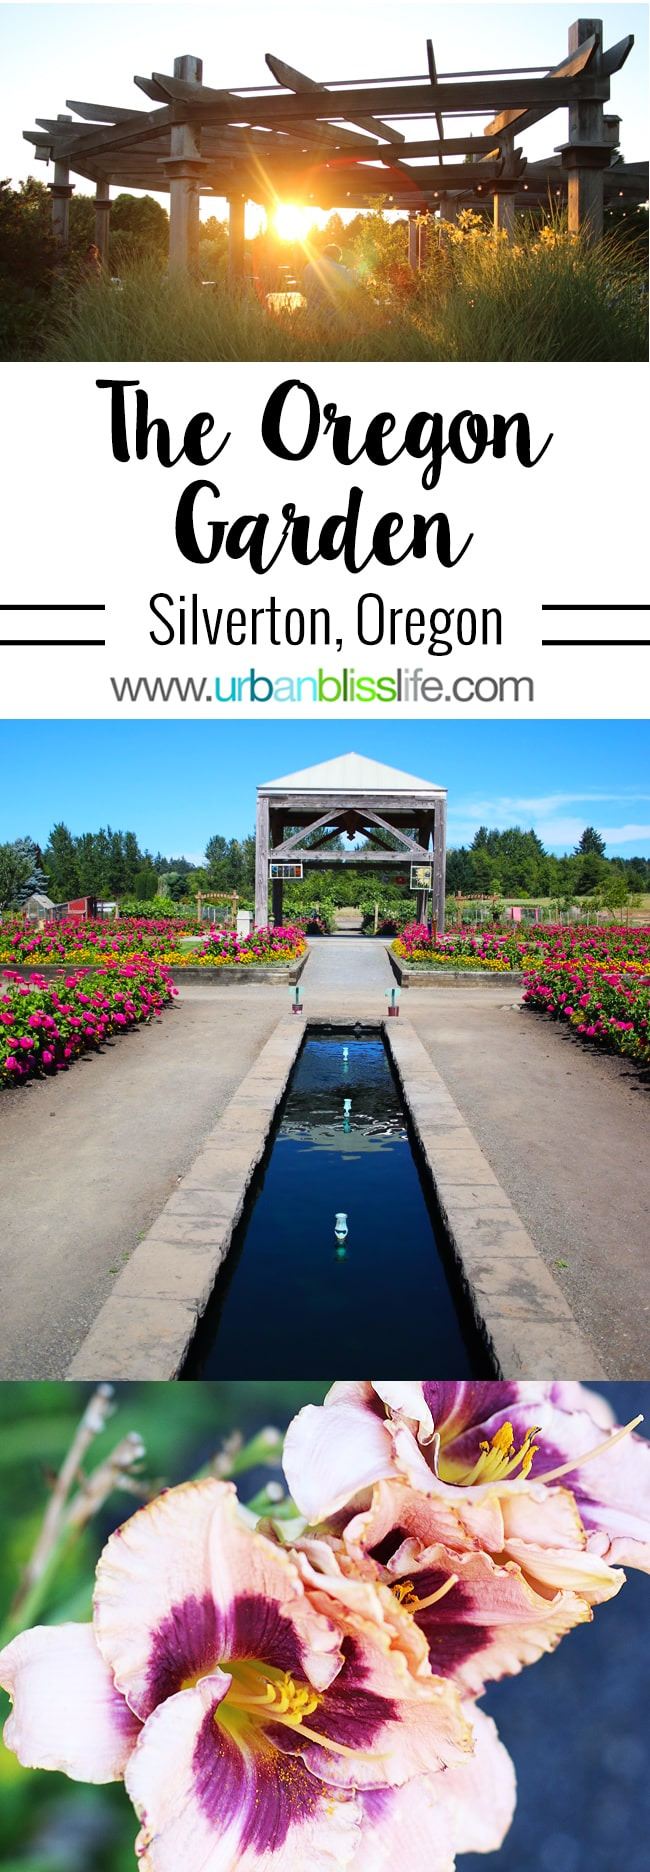 The Oregon Garden travel on UrbanBlissLife.com